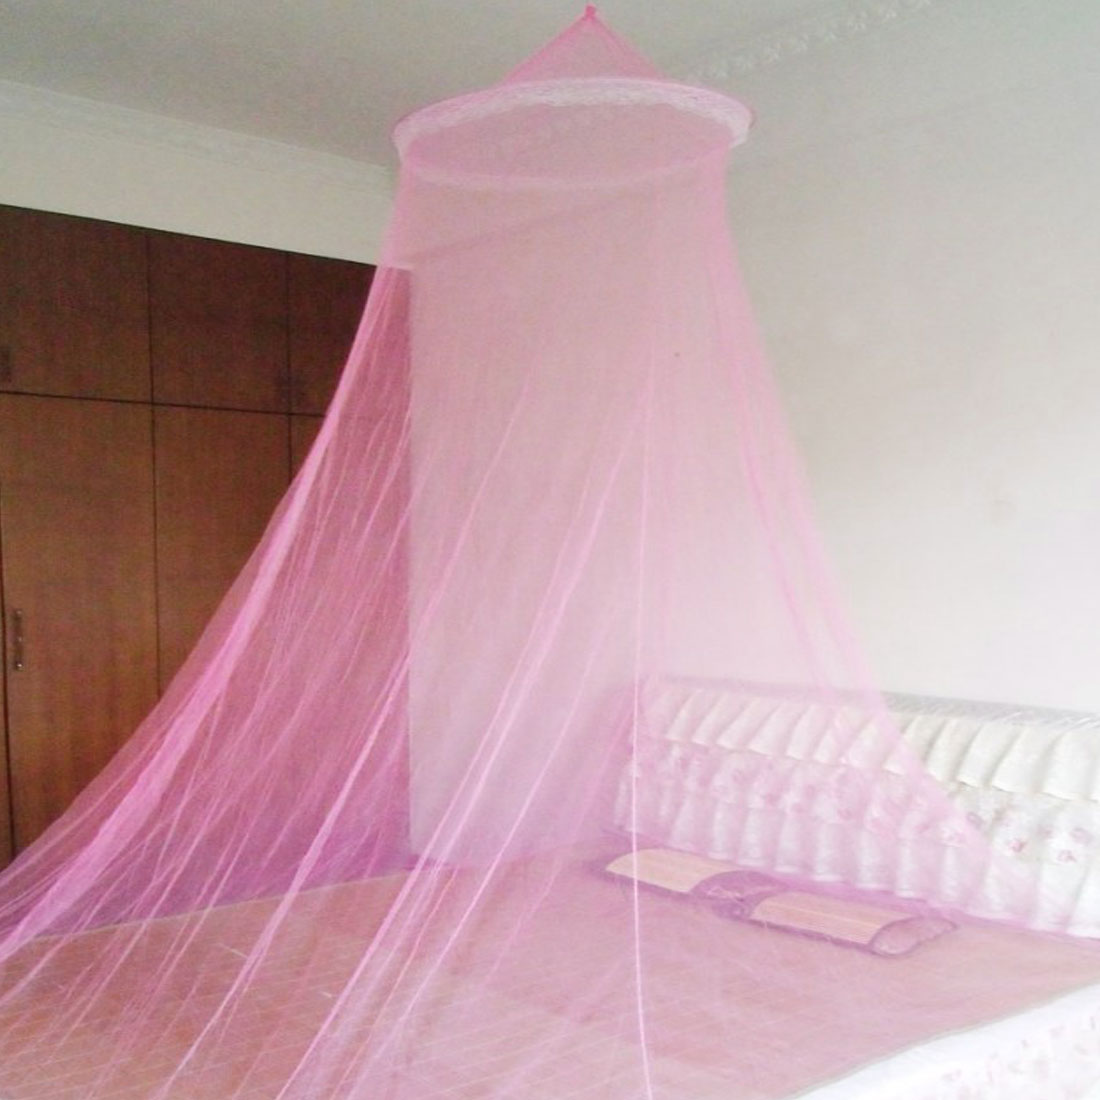 1.5m x 1.8m Bed Pink Nylon Round Top Lace Bedroom Mosquito Net